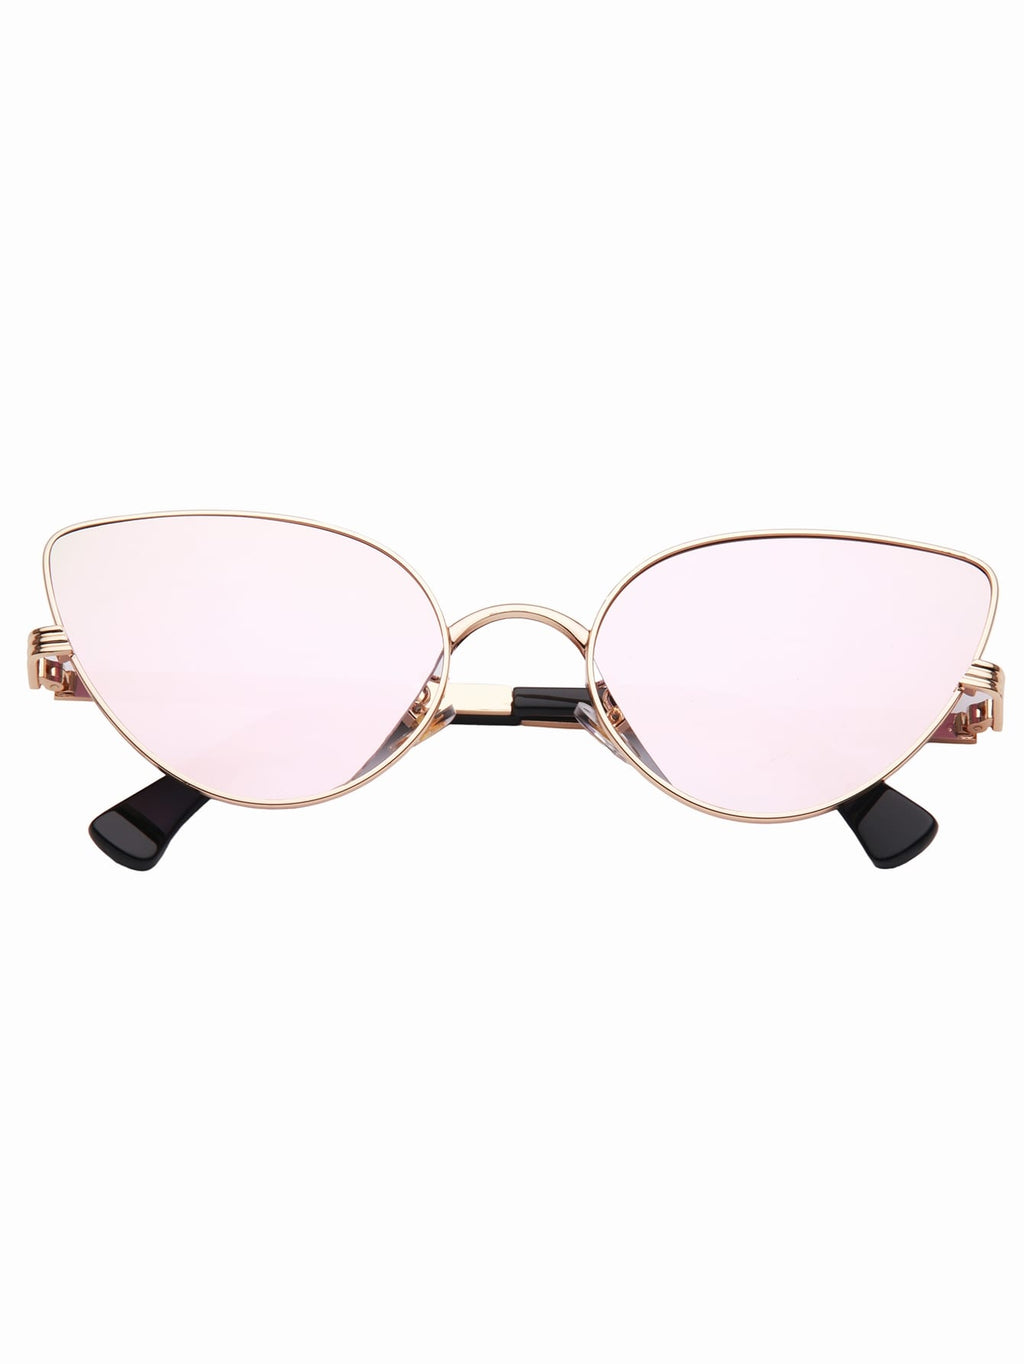 Cat Eye Metallrahmen Sonnenbrille